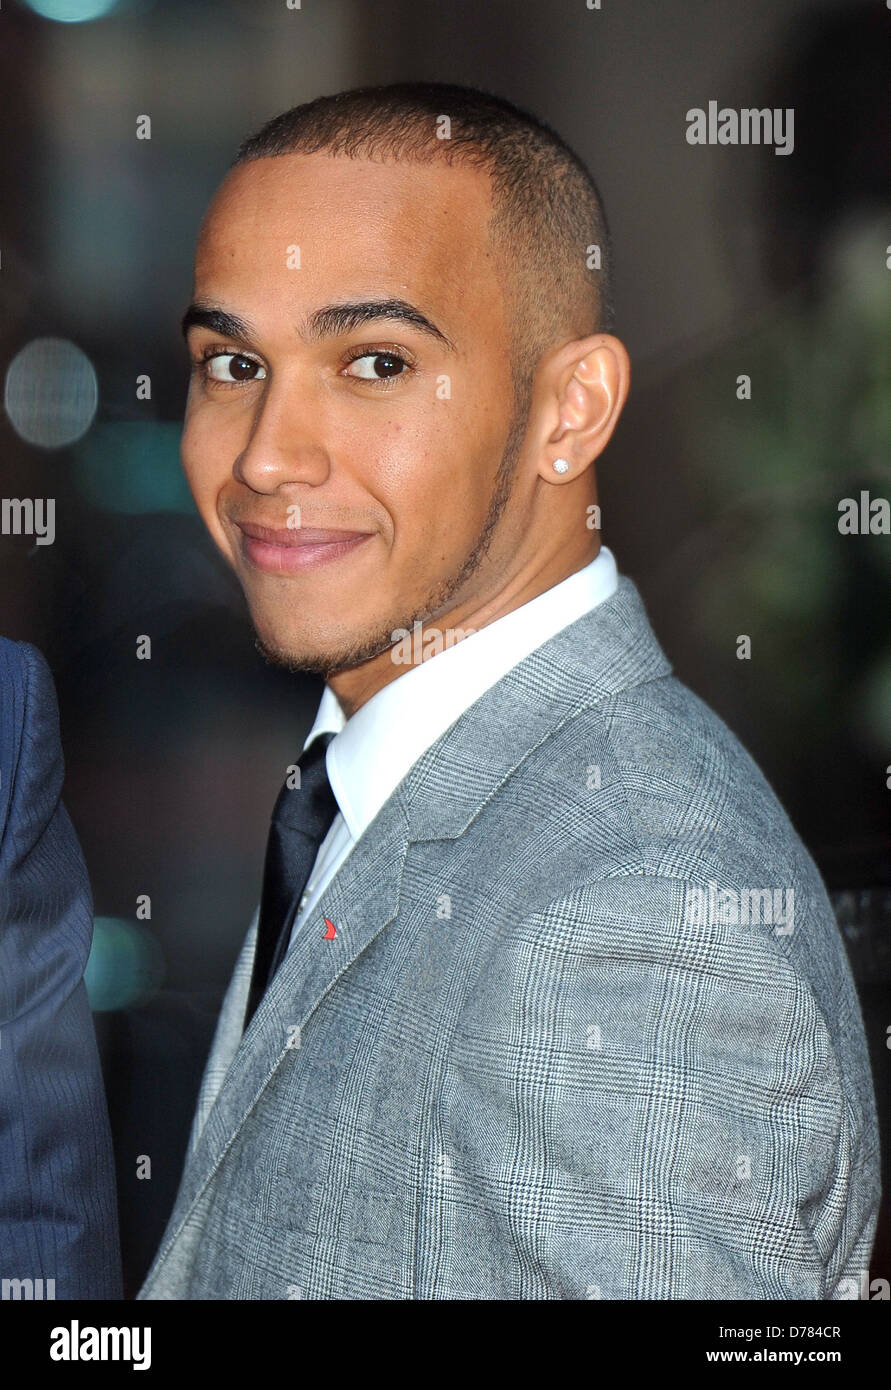 Lewis Hamilton Mbe Mclaren Automotive Showroom Opening At One Hyde